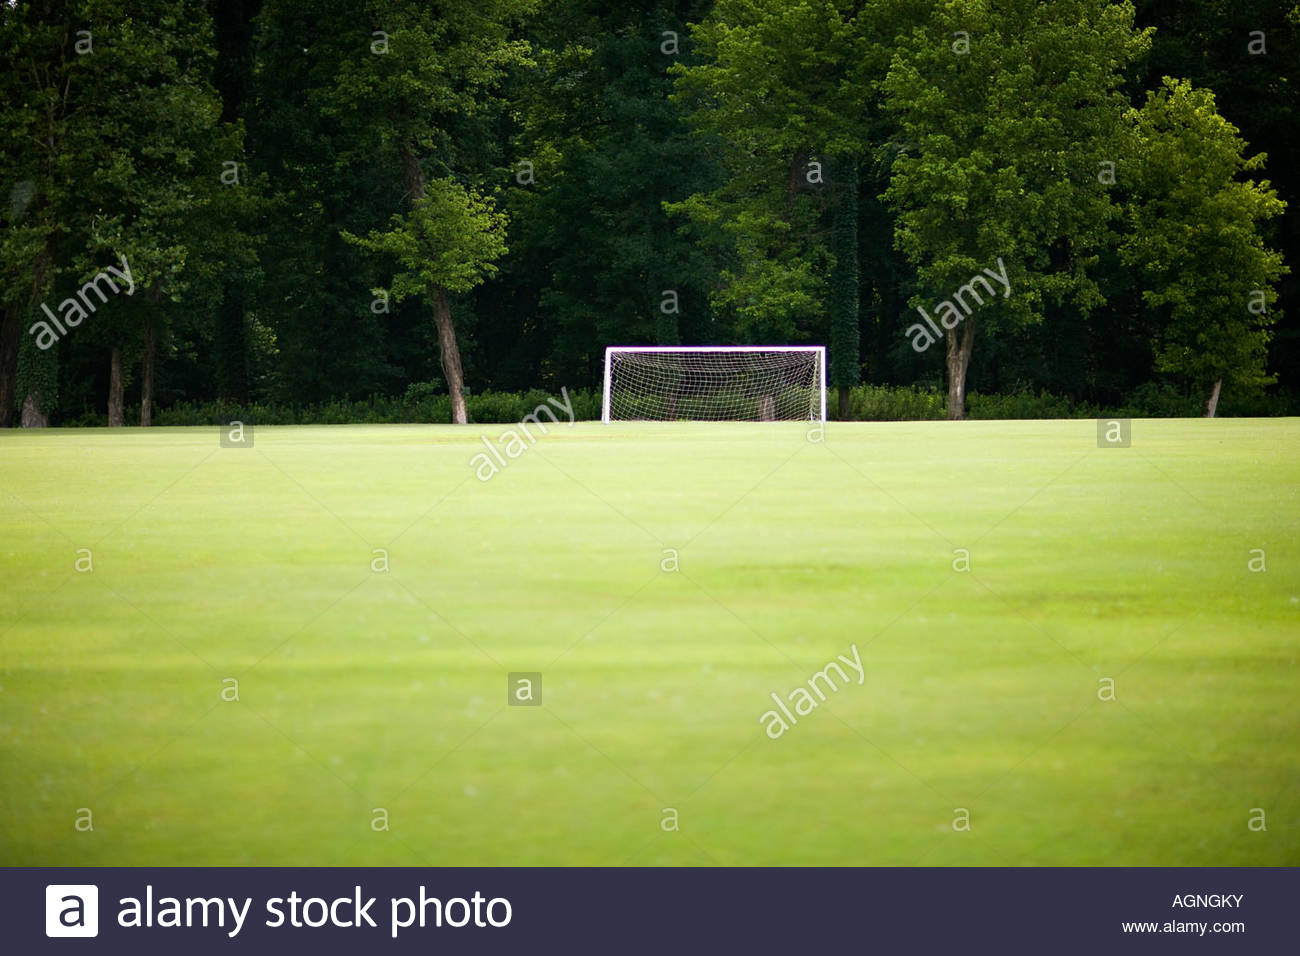 green grass soccer field. Soccer Goal On A Empty Field With Green Grass And Trees E